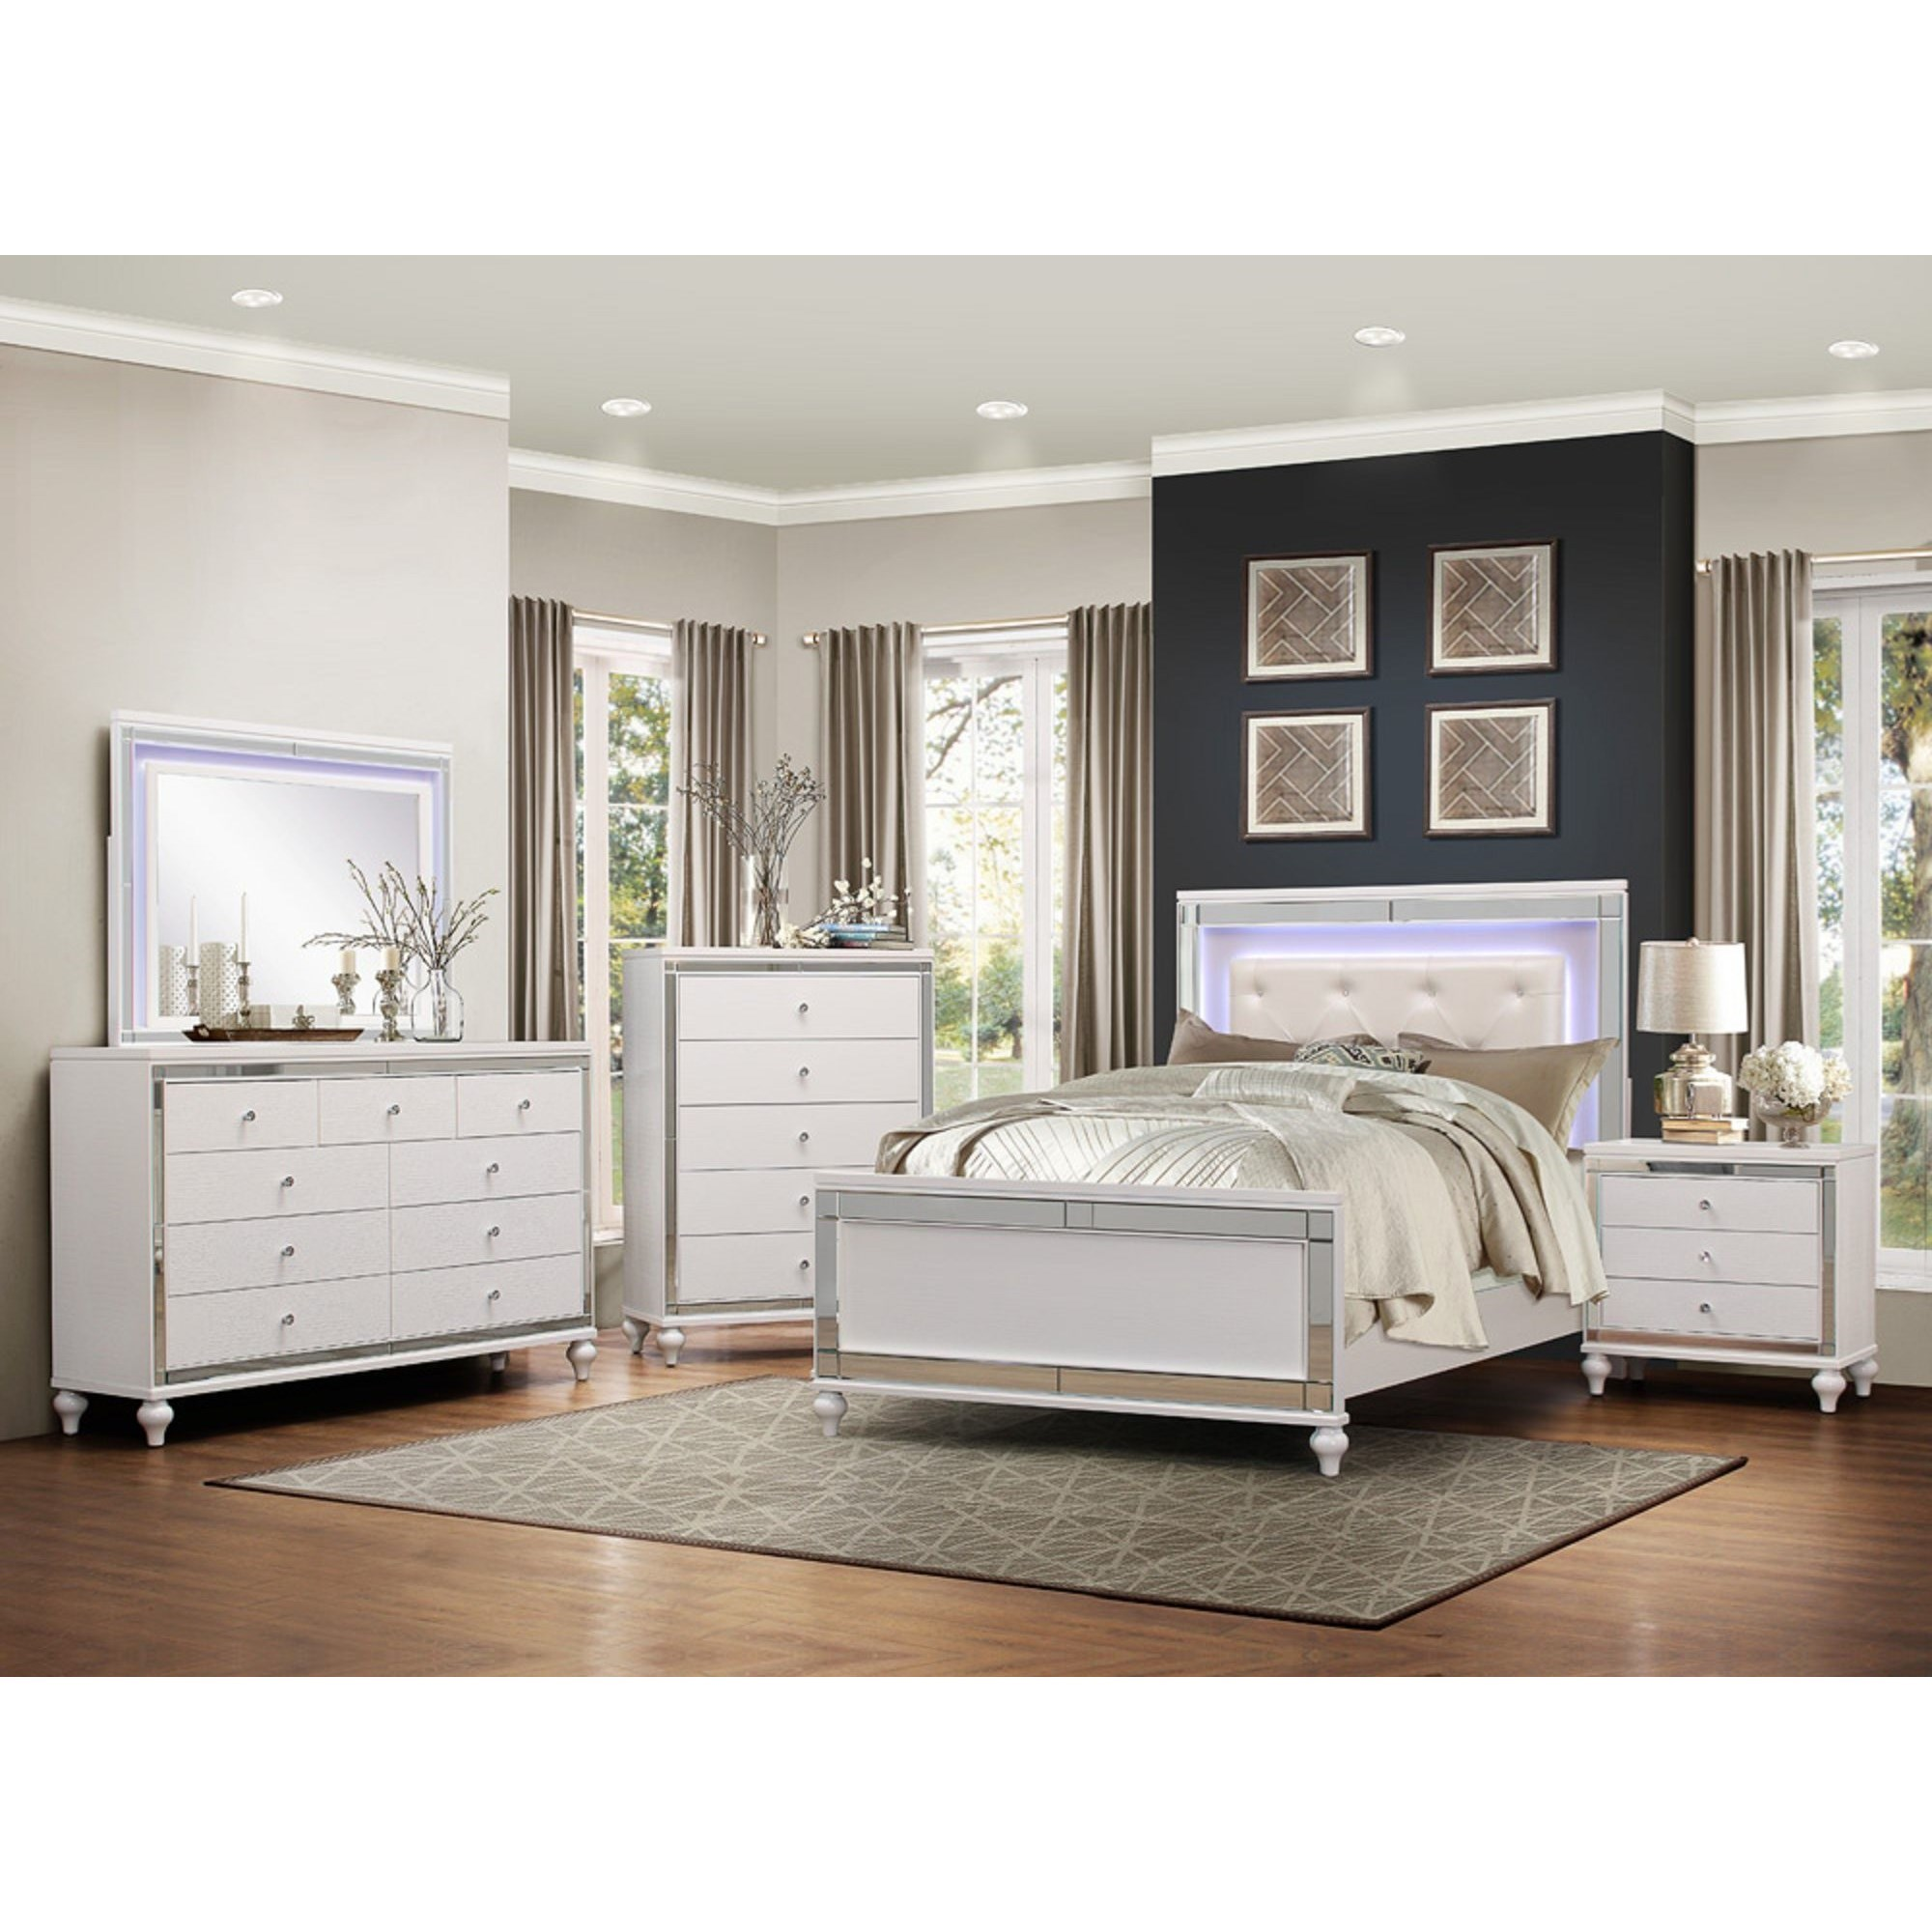 Alonza Queen Lit Bedroom Group by Homelegance at Simply Home by Lindy's